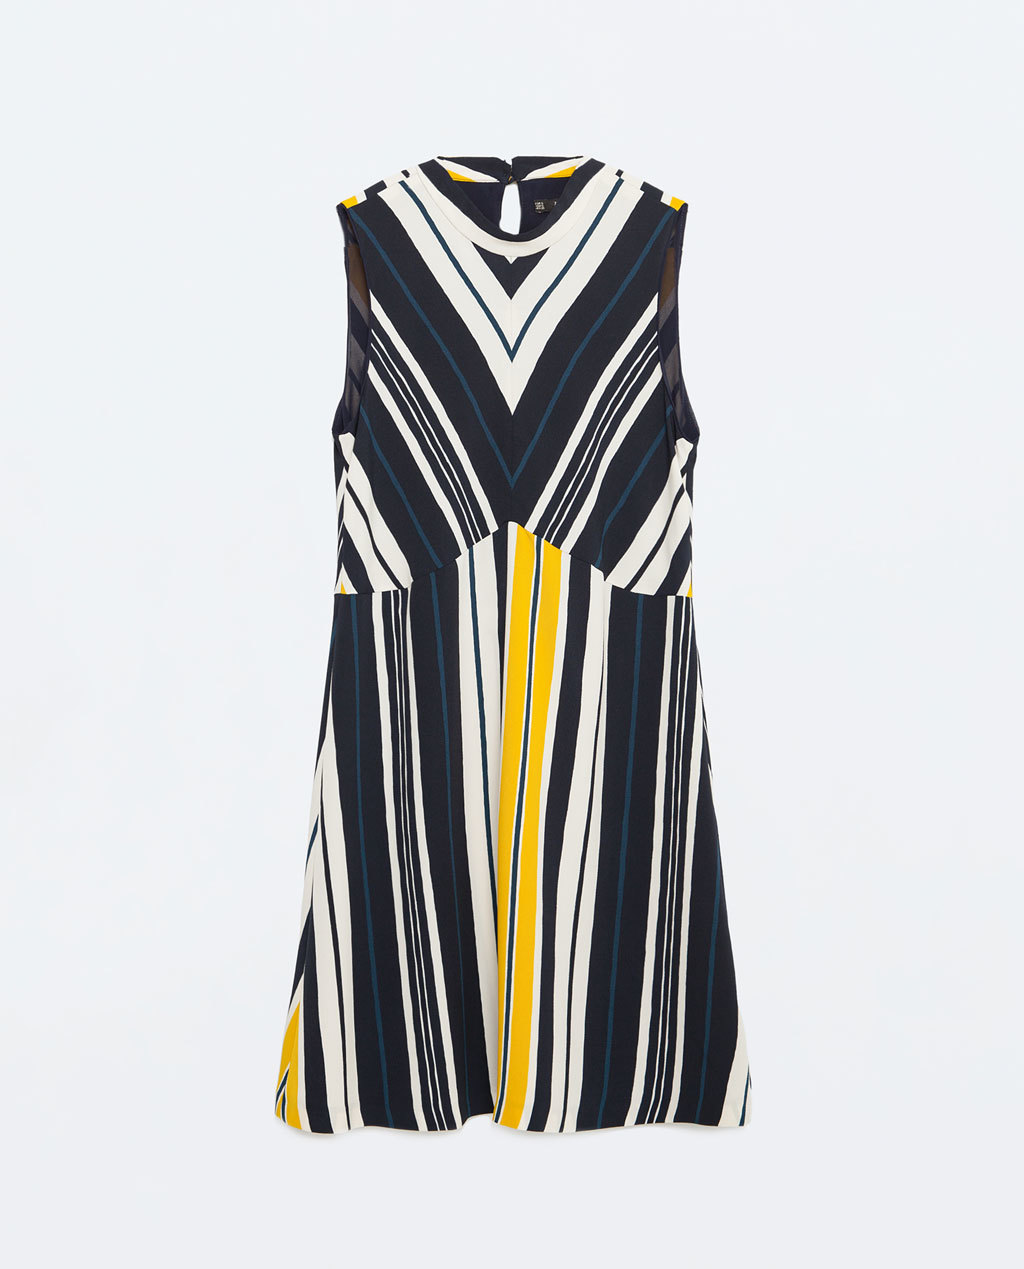 A Line Striped Dress - style: shift; length: mid thigh; fit: empire; pattern: horizontal stripes; sleeve style: sleeveless; predominant colour: navy; secondary colour: yellow; occasions: evening, creative work; fibres: polyester/polyamide - 100%; neckline: crew; sleeve length: sleeveless; texture group: cotton feel fabrics; pattern type: fabric; pattern size: big & busy; season: s/s 2016; wardrobe: highlight